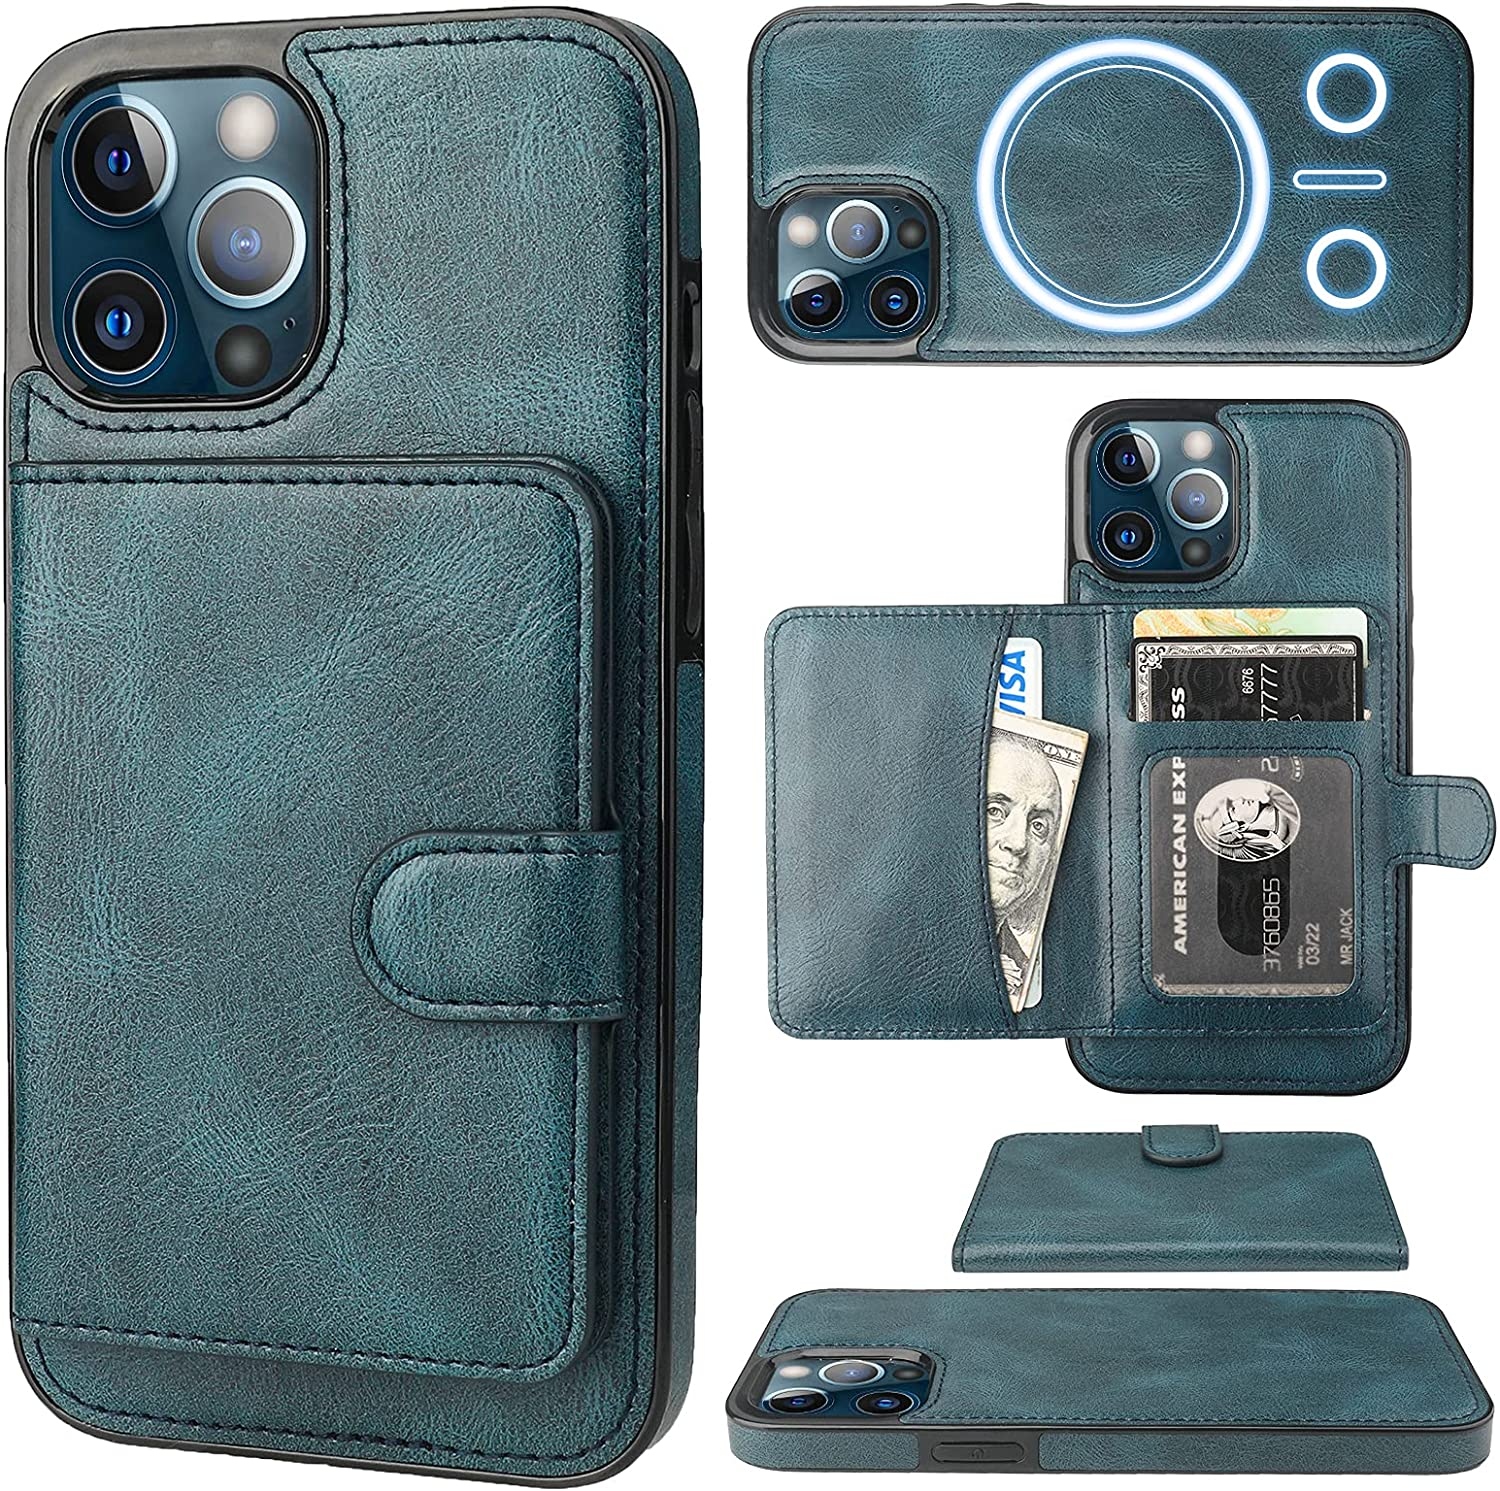 Bocasal Wallet Case for iPhone 12 Pro Max Compatible with MagSafe Magnetic RFID Blocking Detachable Premium PU Leather Flip Case with Card Slots Holder Kickstand Wireless Charging 6.7 Inch (Blue)